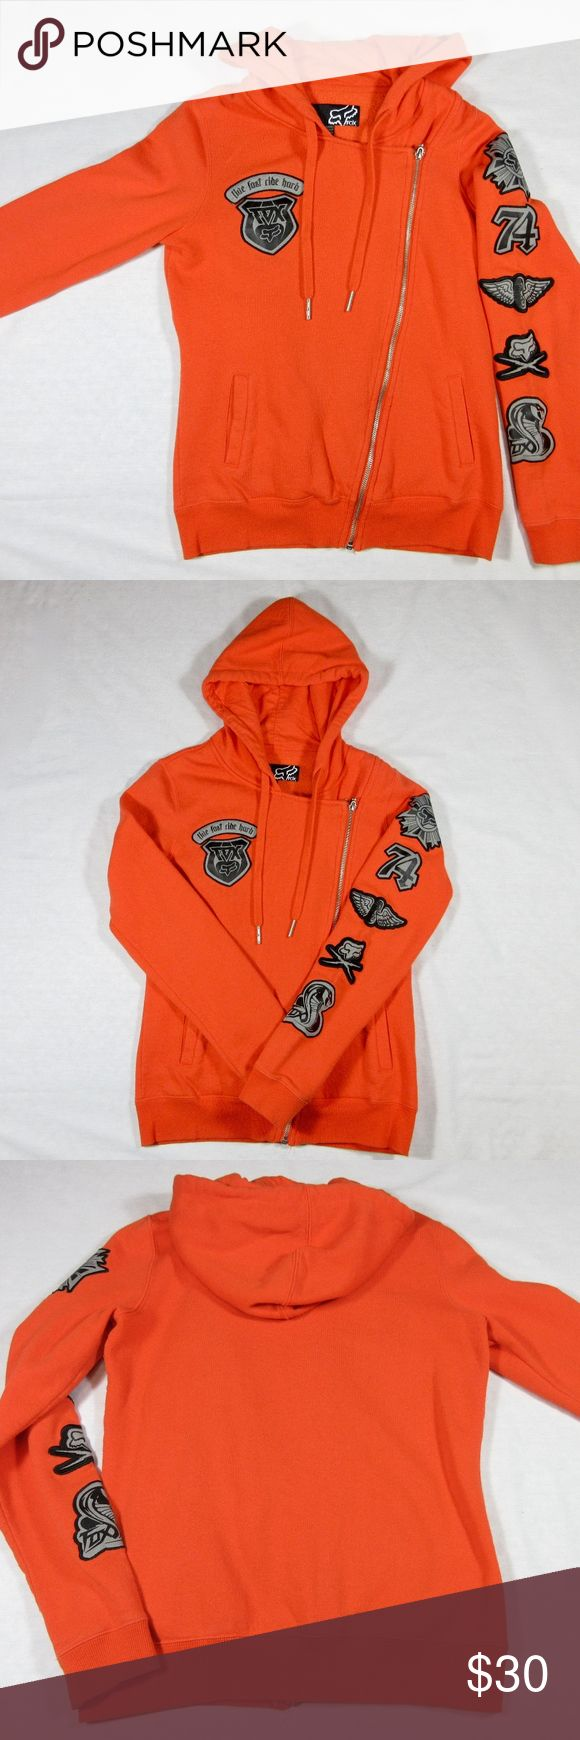 "Fox Racing Hoody, Women's S, M  Body Con, Orange Pre-owned Fox Racing hooded sweatshirt.  Stunning orange with black and gray decals.  Asymmetric zipper closure.  An inner snap holds the fabric in back in place.  Curves in a bit at the waist, making this a very flattering, semi body con hoodie.  Marked a Women's M.  Will also fit a small.  Chest, 36"" -- Sleeves, 23"" -- Length from back neck to lower edge, 23"".  Pre-owned but in very good condition with no flaws to note. Fox Racing Jackets…"